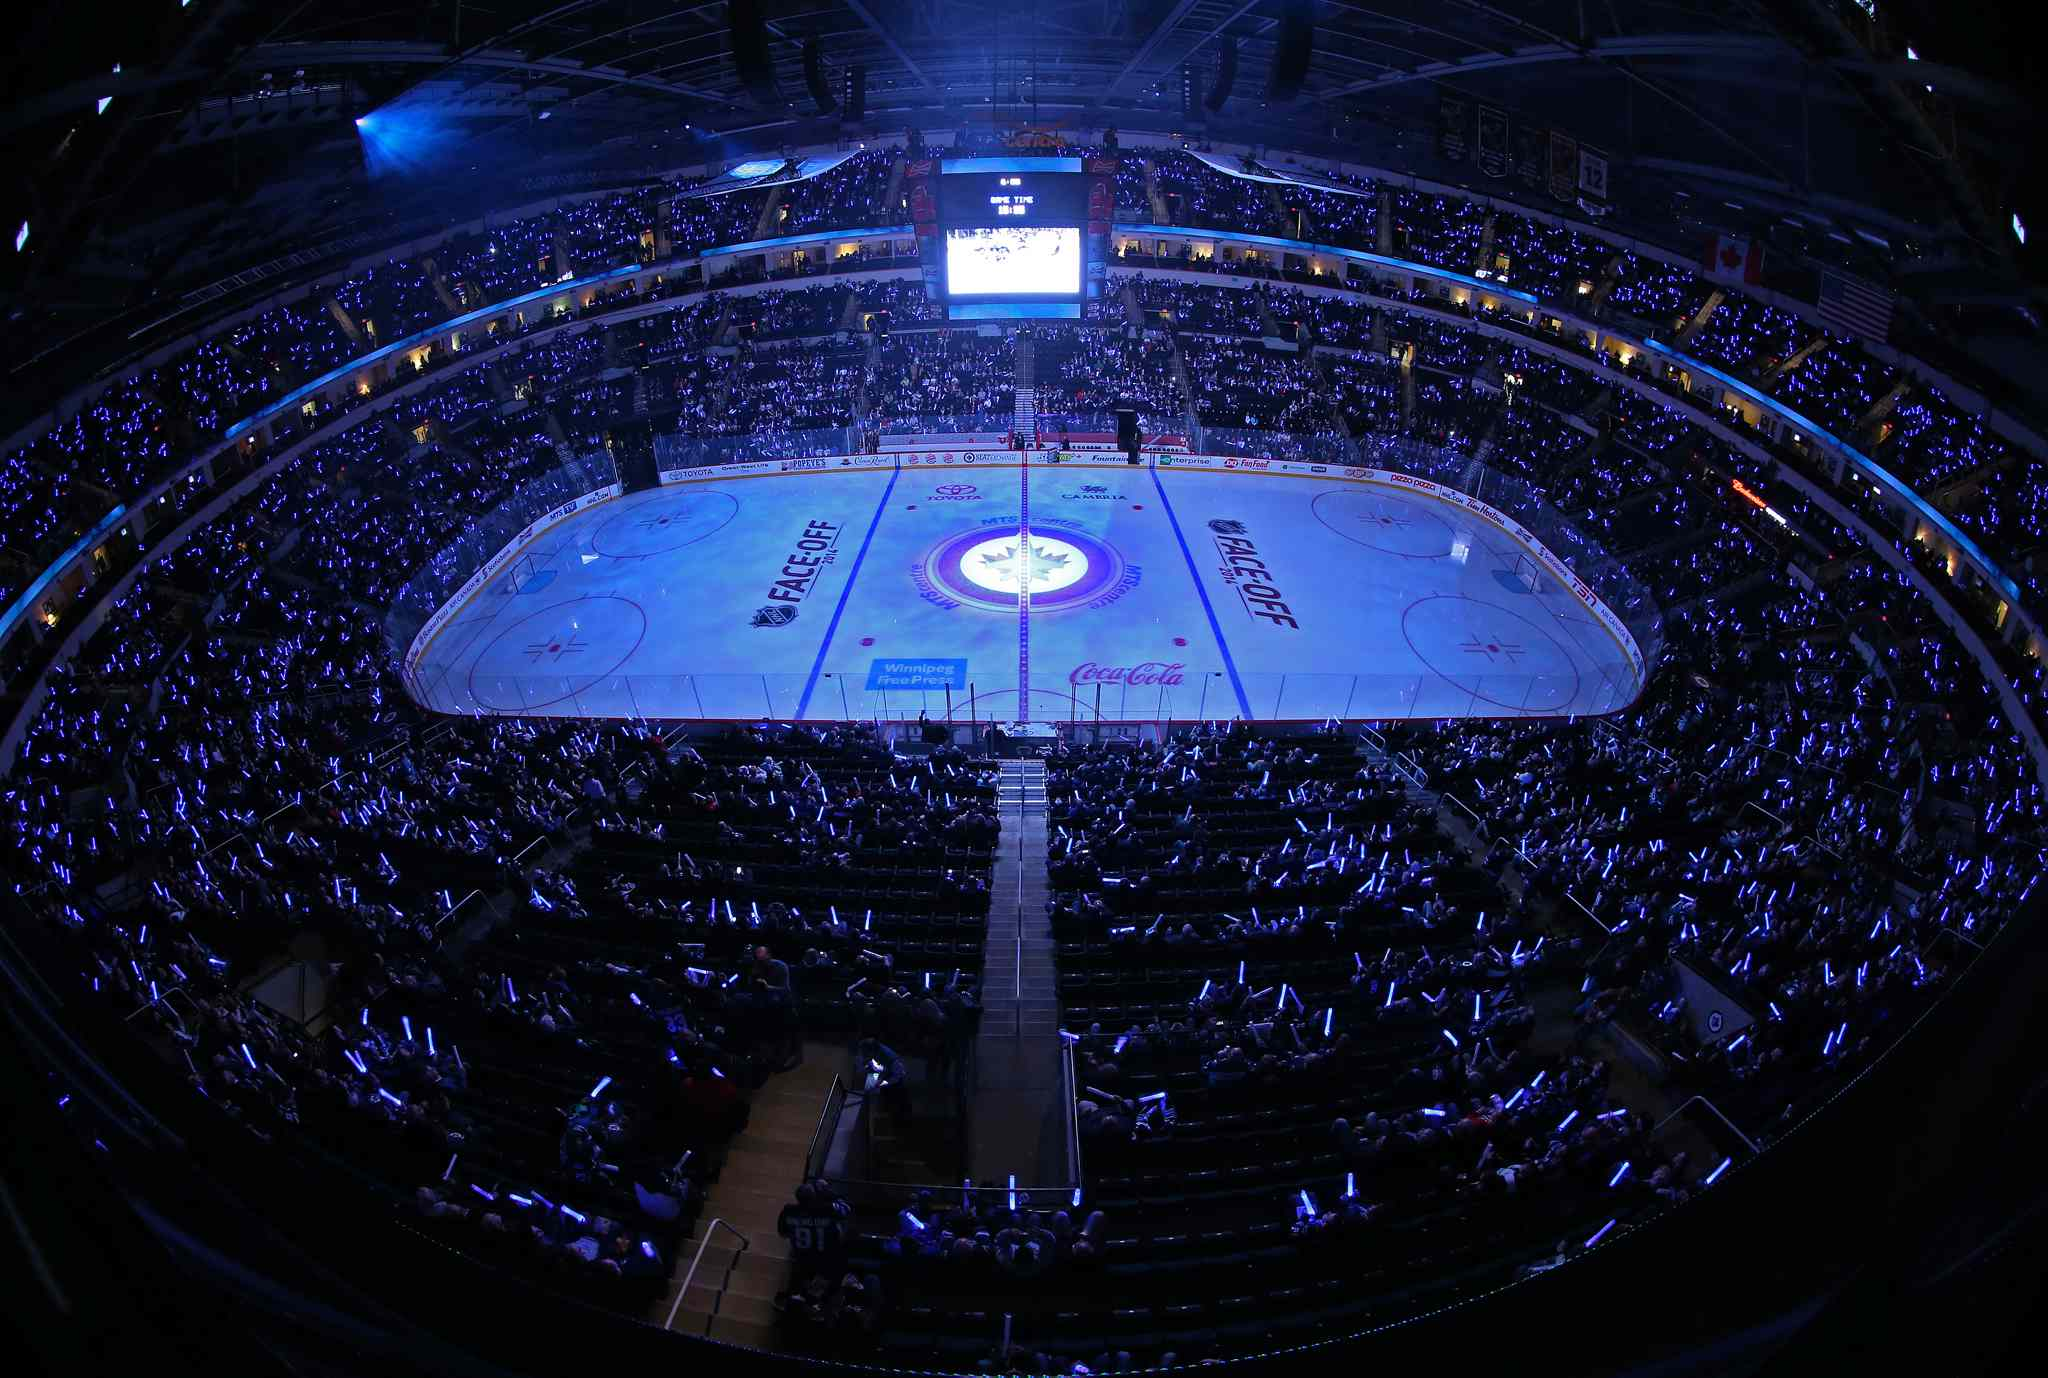 2014 Winnipeg Jets home game at the MTS Centre.